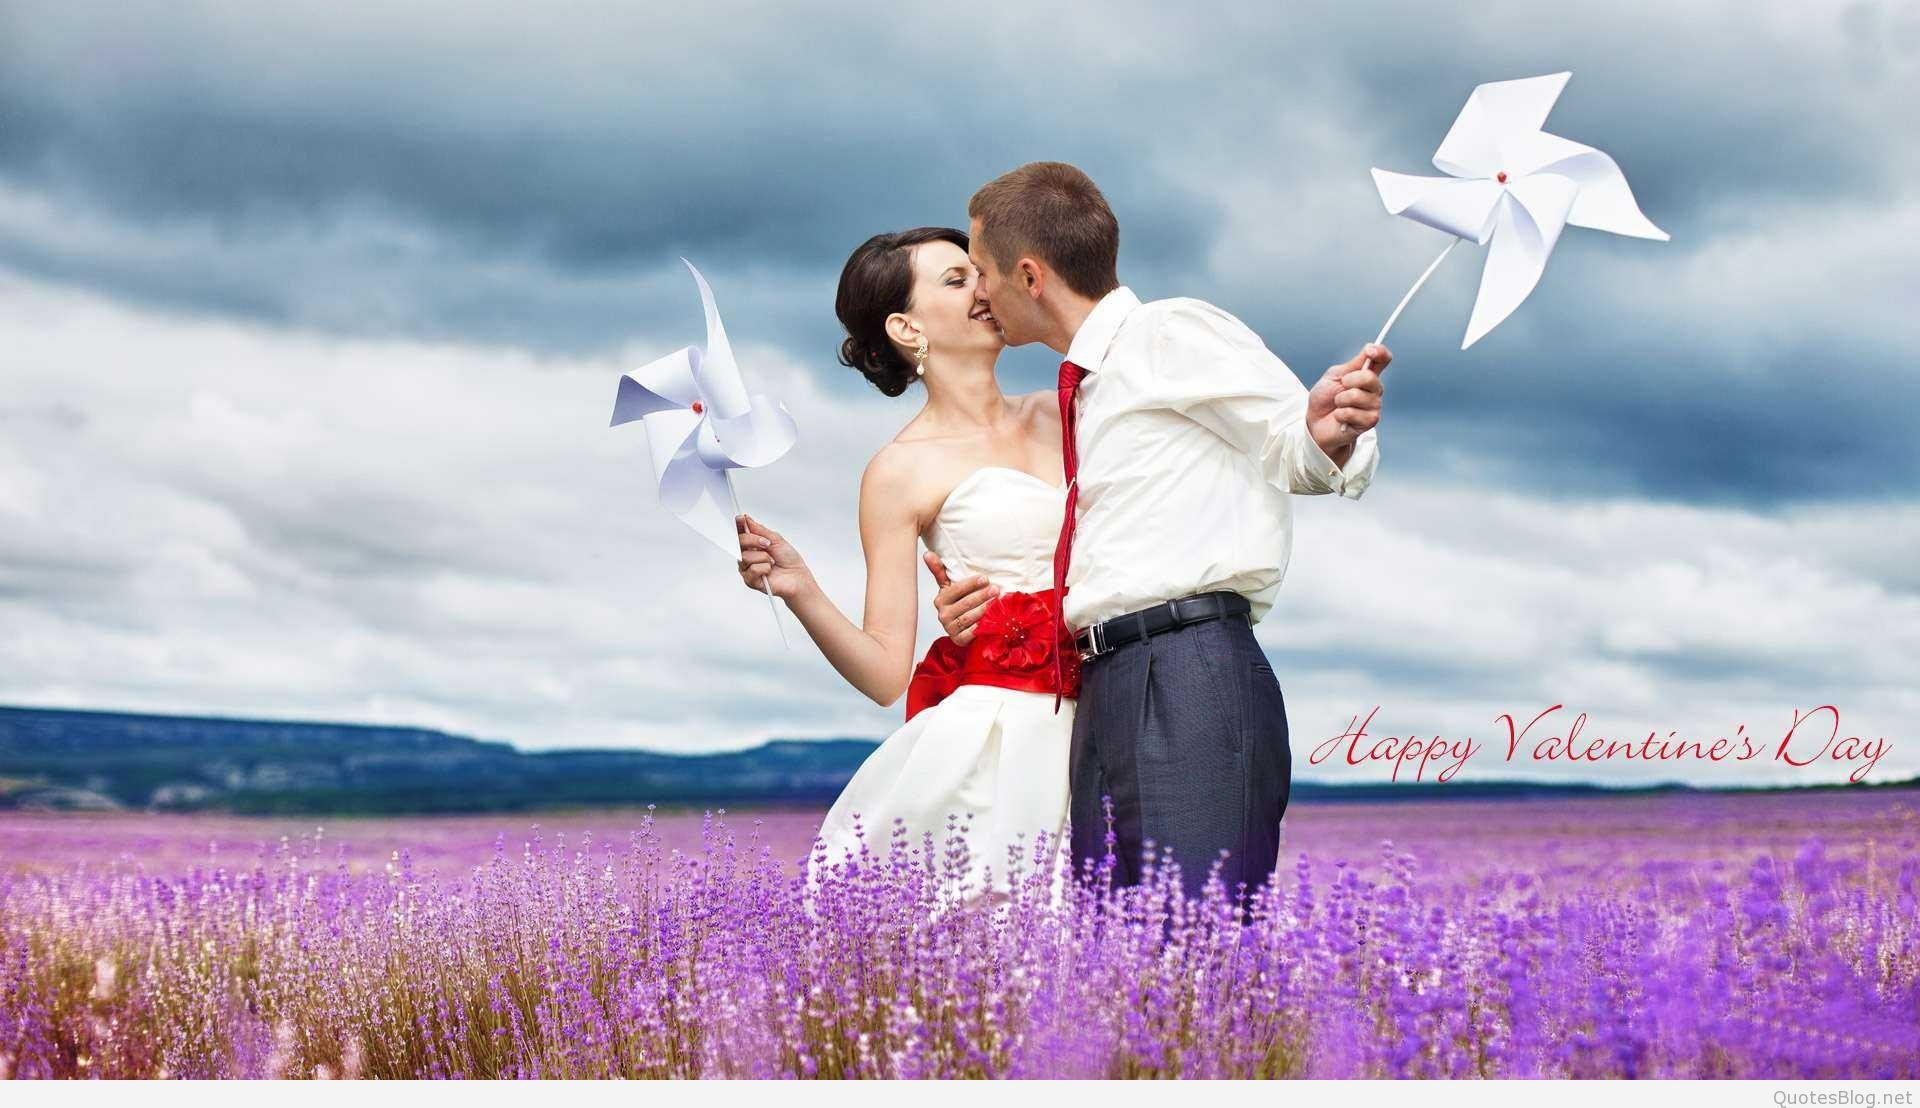 Romantic Love Couple Wallpapers Free Download: Punjabi Wallpapers 2018 (76+ Pictures